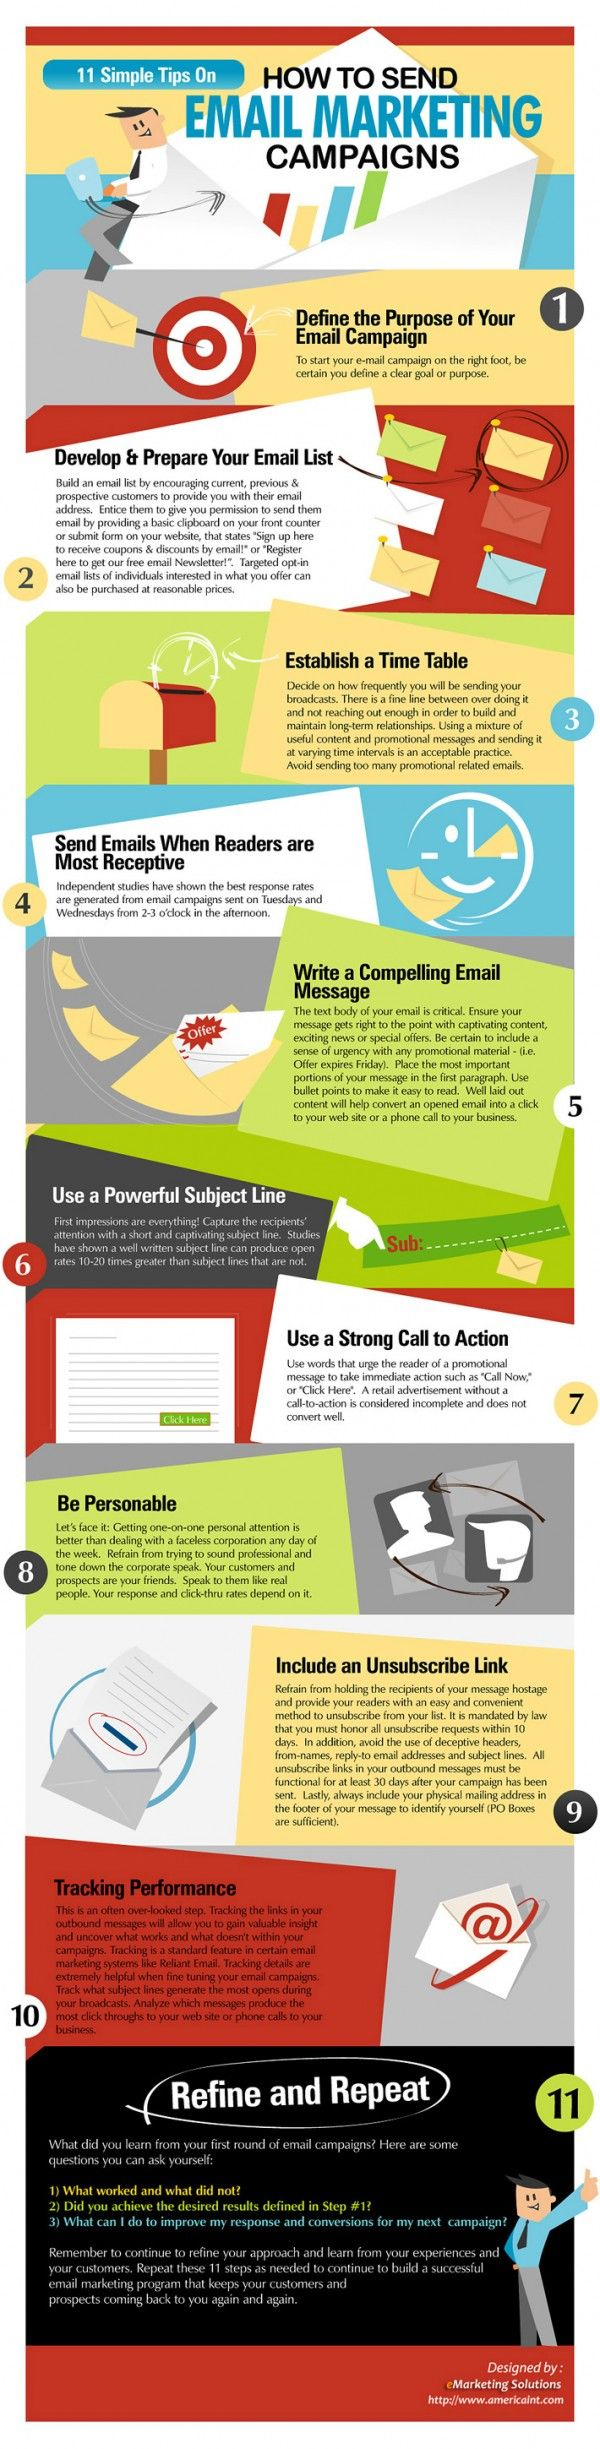 11 Simple Tips to Create the Perfect Email Marketing Campaign